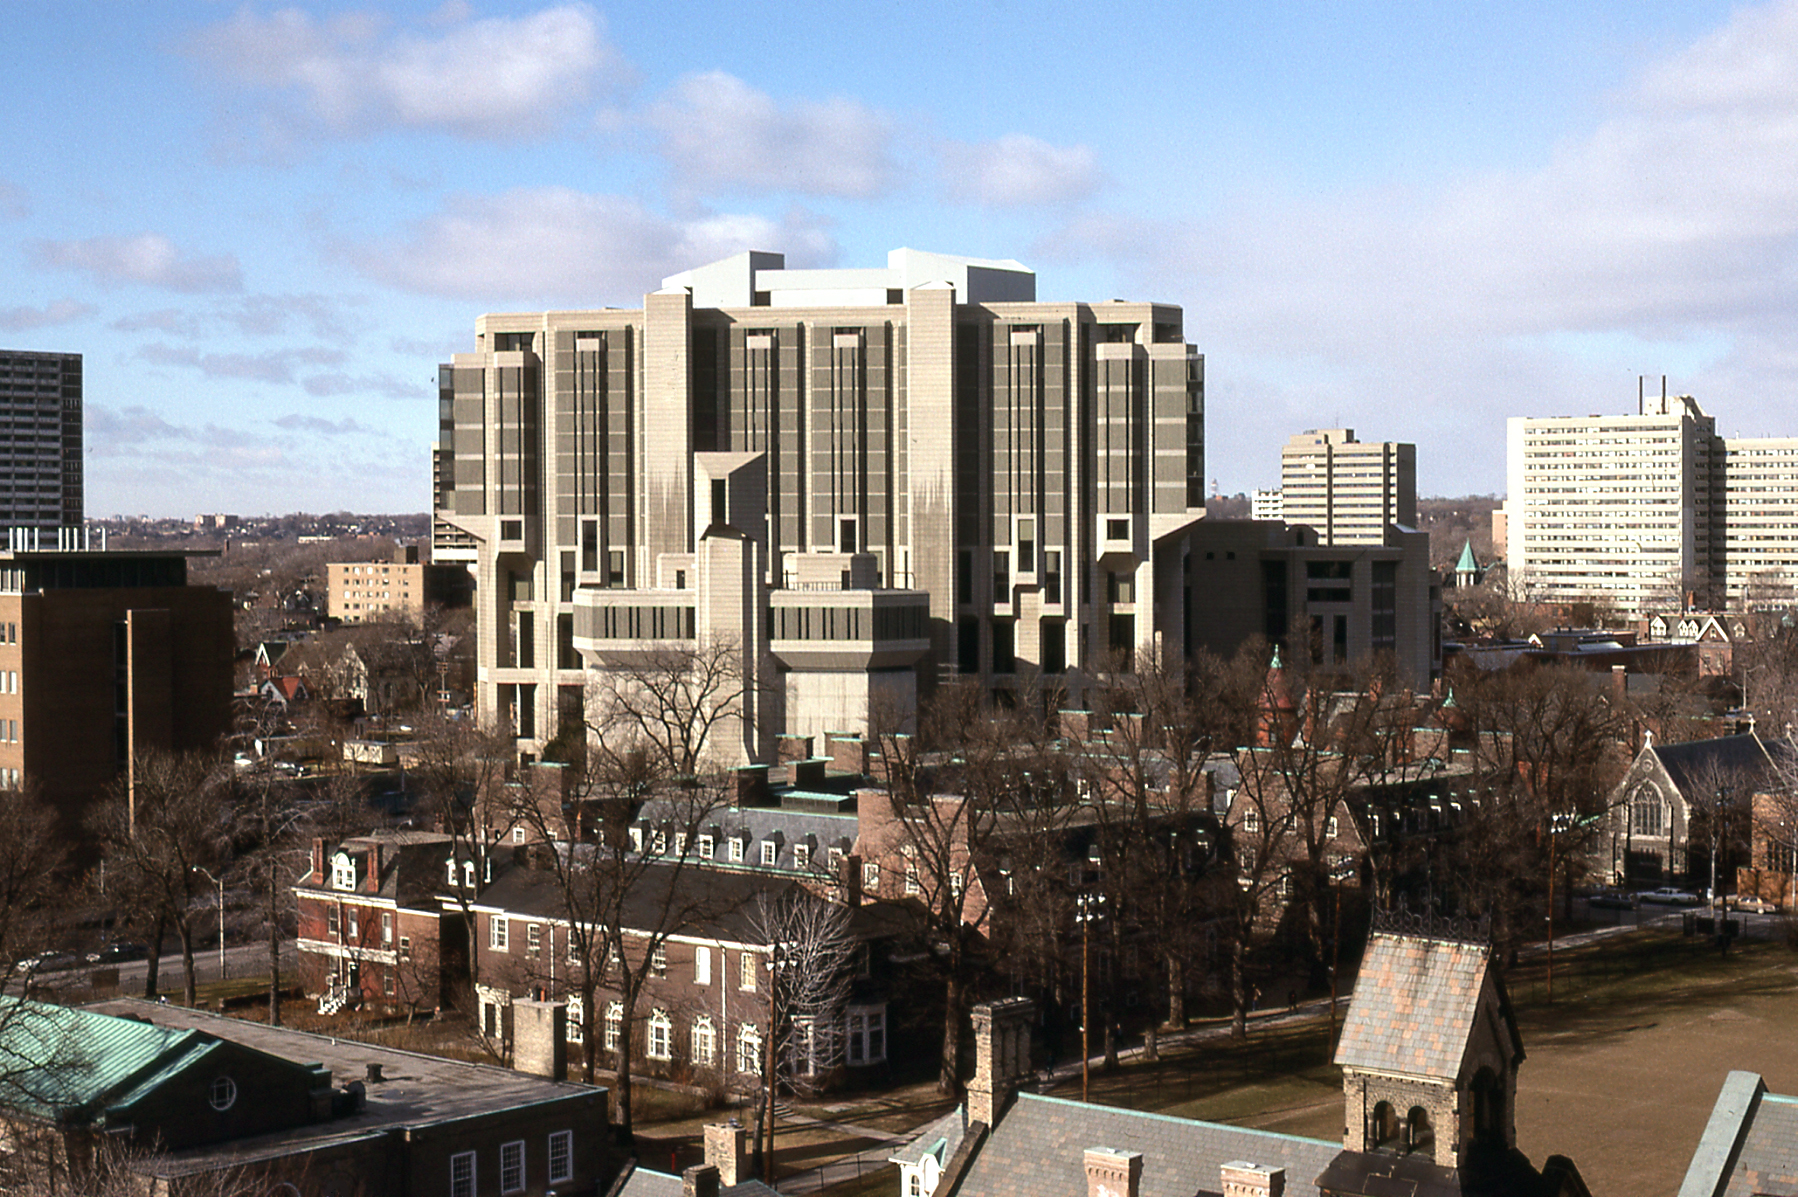 File:Robarts Library viewed from University College Tower, University of Toronto, 1987 -